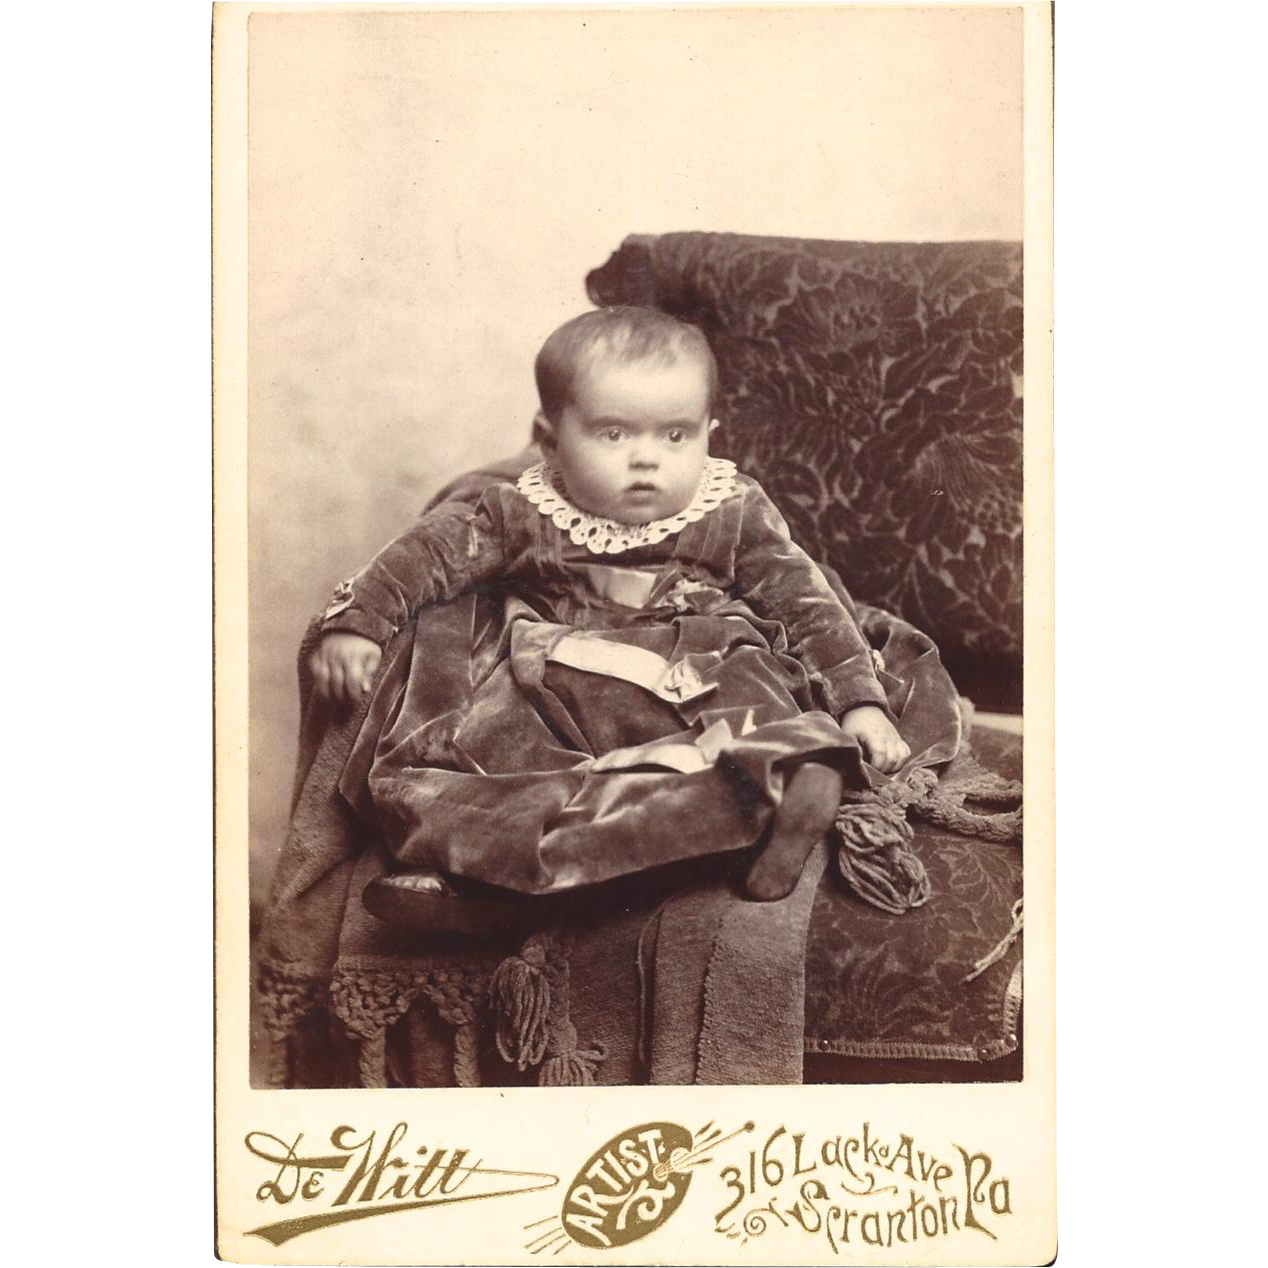 Cabinet Photograph Card of Baby Dressed in Velvet